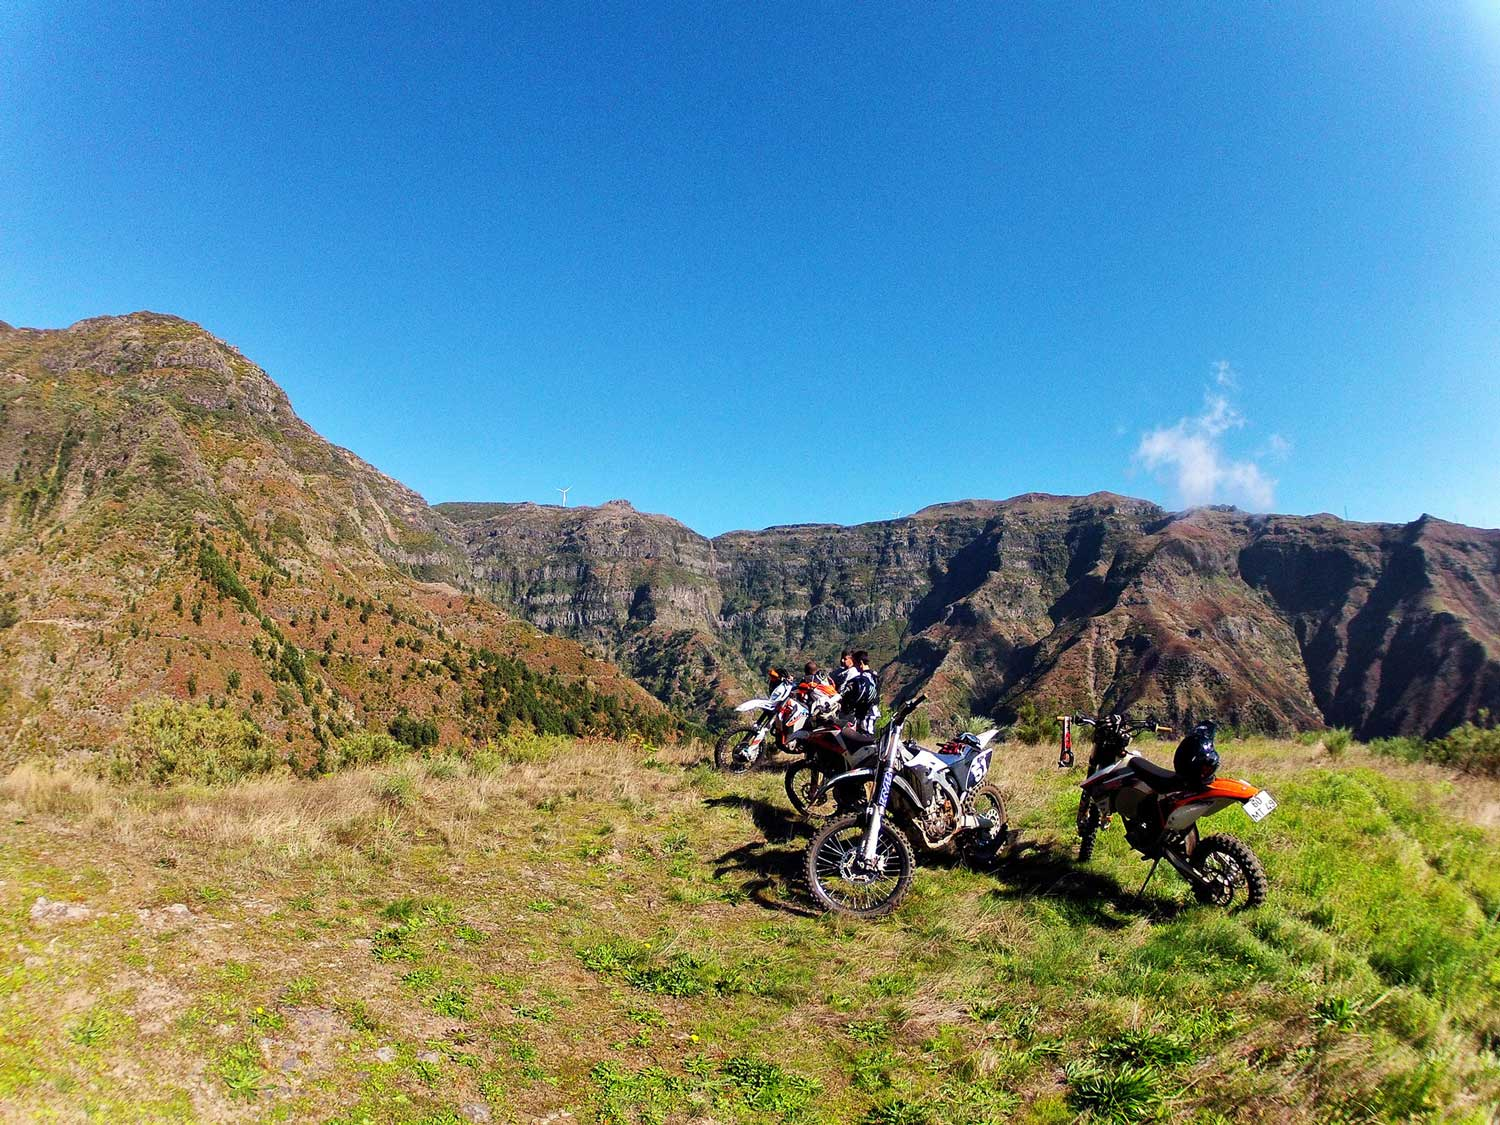 The mountains of madeira and a group of riders chilling